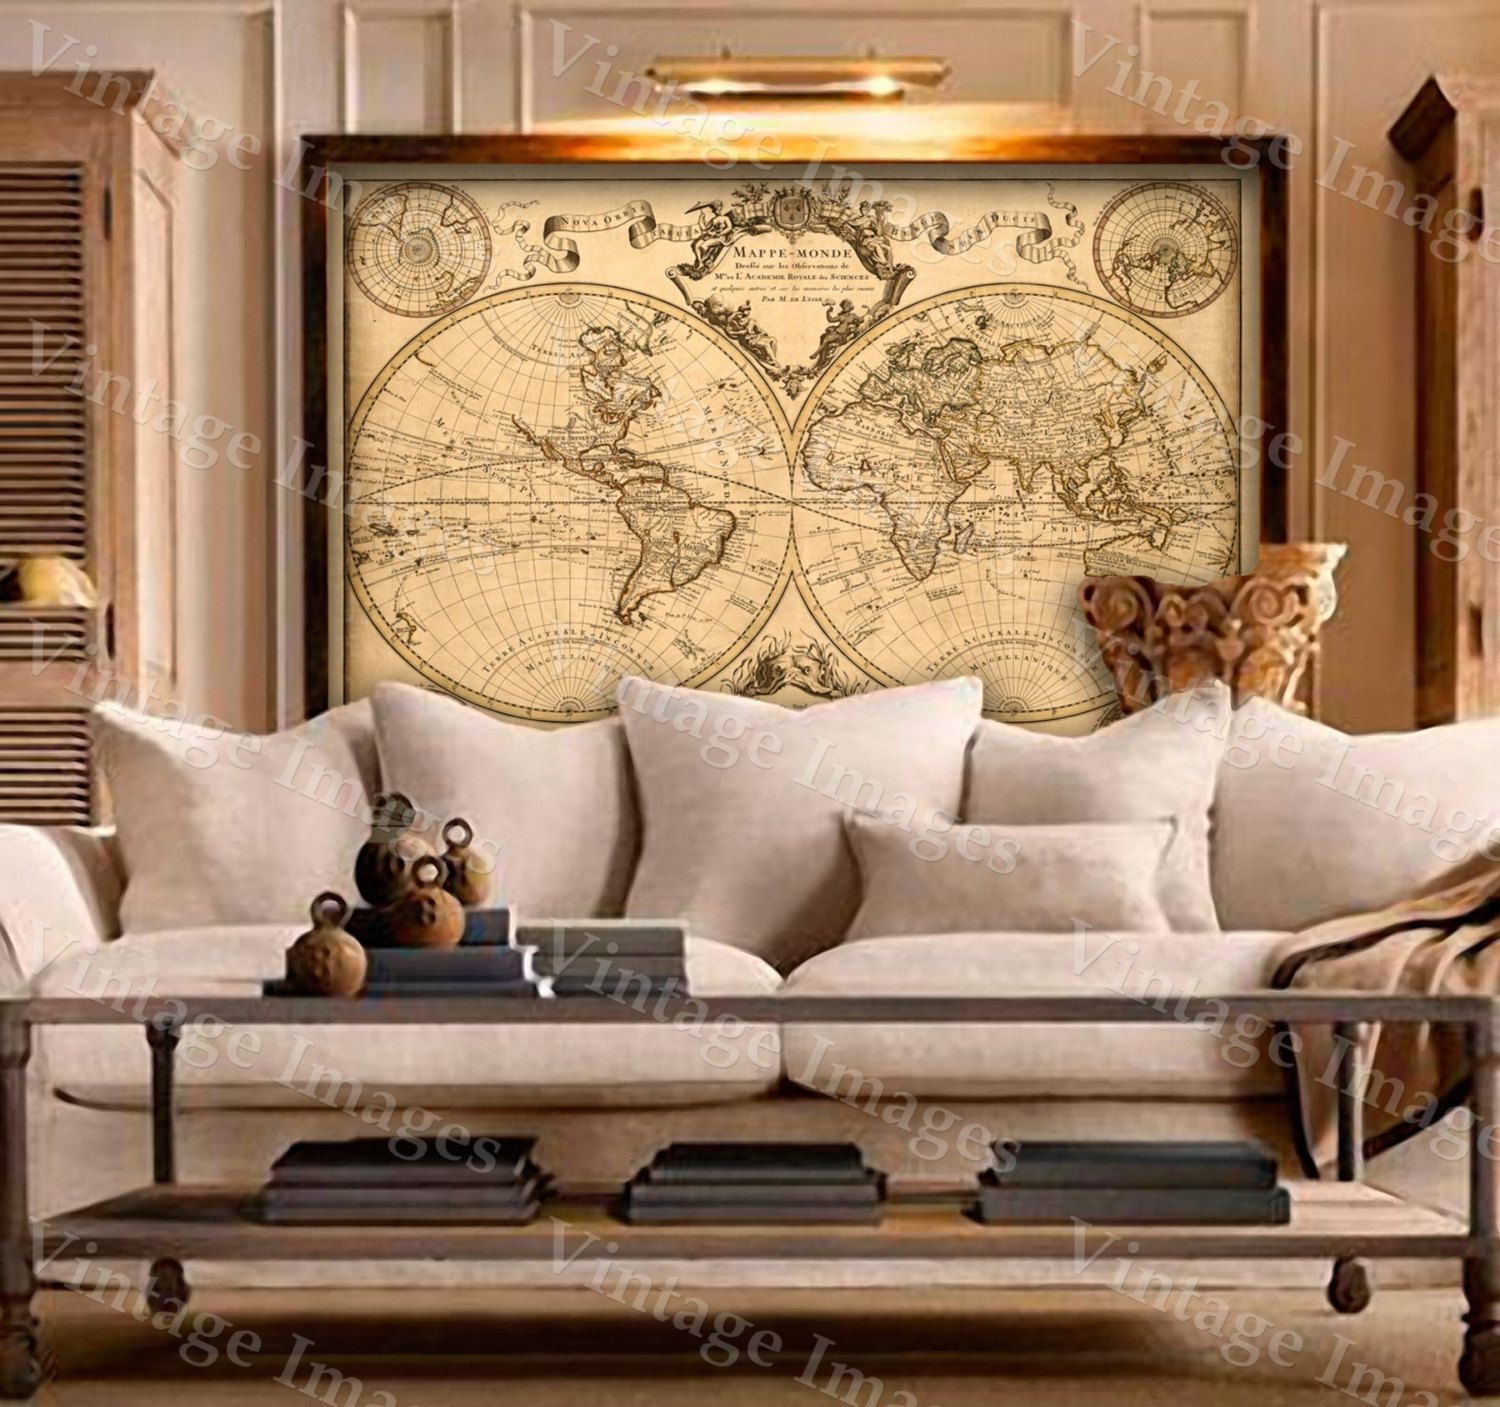 World Home Decor L 39isle 39s 1720 Old World Map Historic Map Antique Style